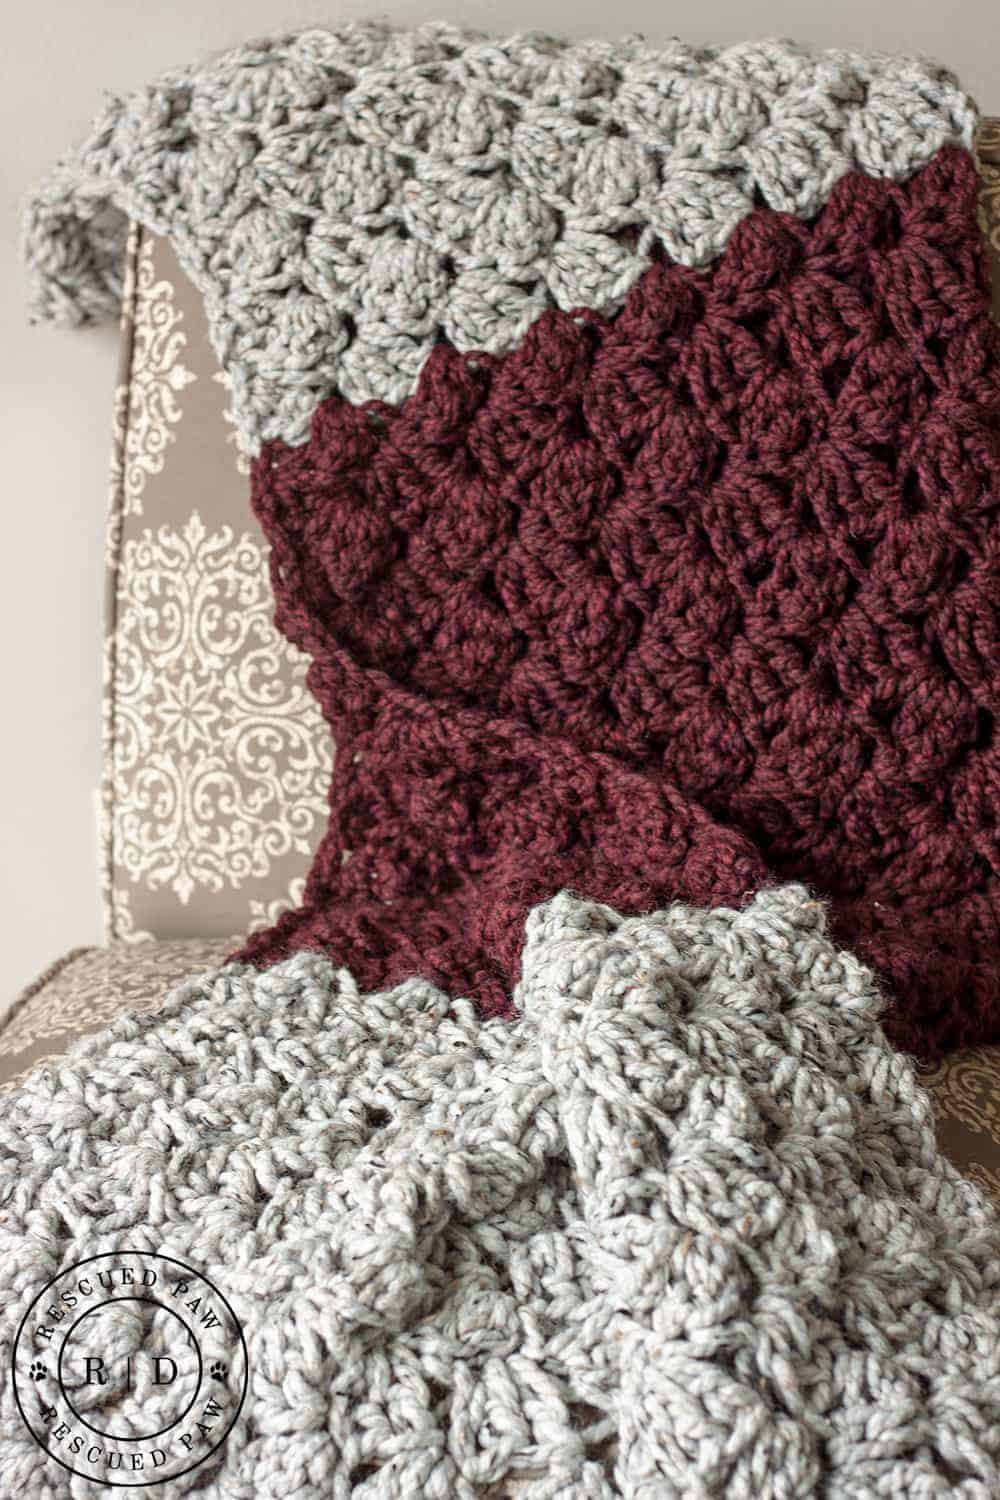 Crochet Throws Patterns Inspirational Charlotte Crochet Blanket ⋆ Rescued Paw Designs Crochet Of Wonderful 44 Images Crochet Throws Patterns